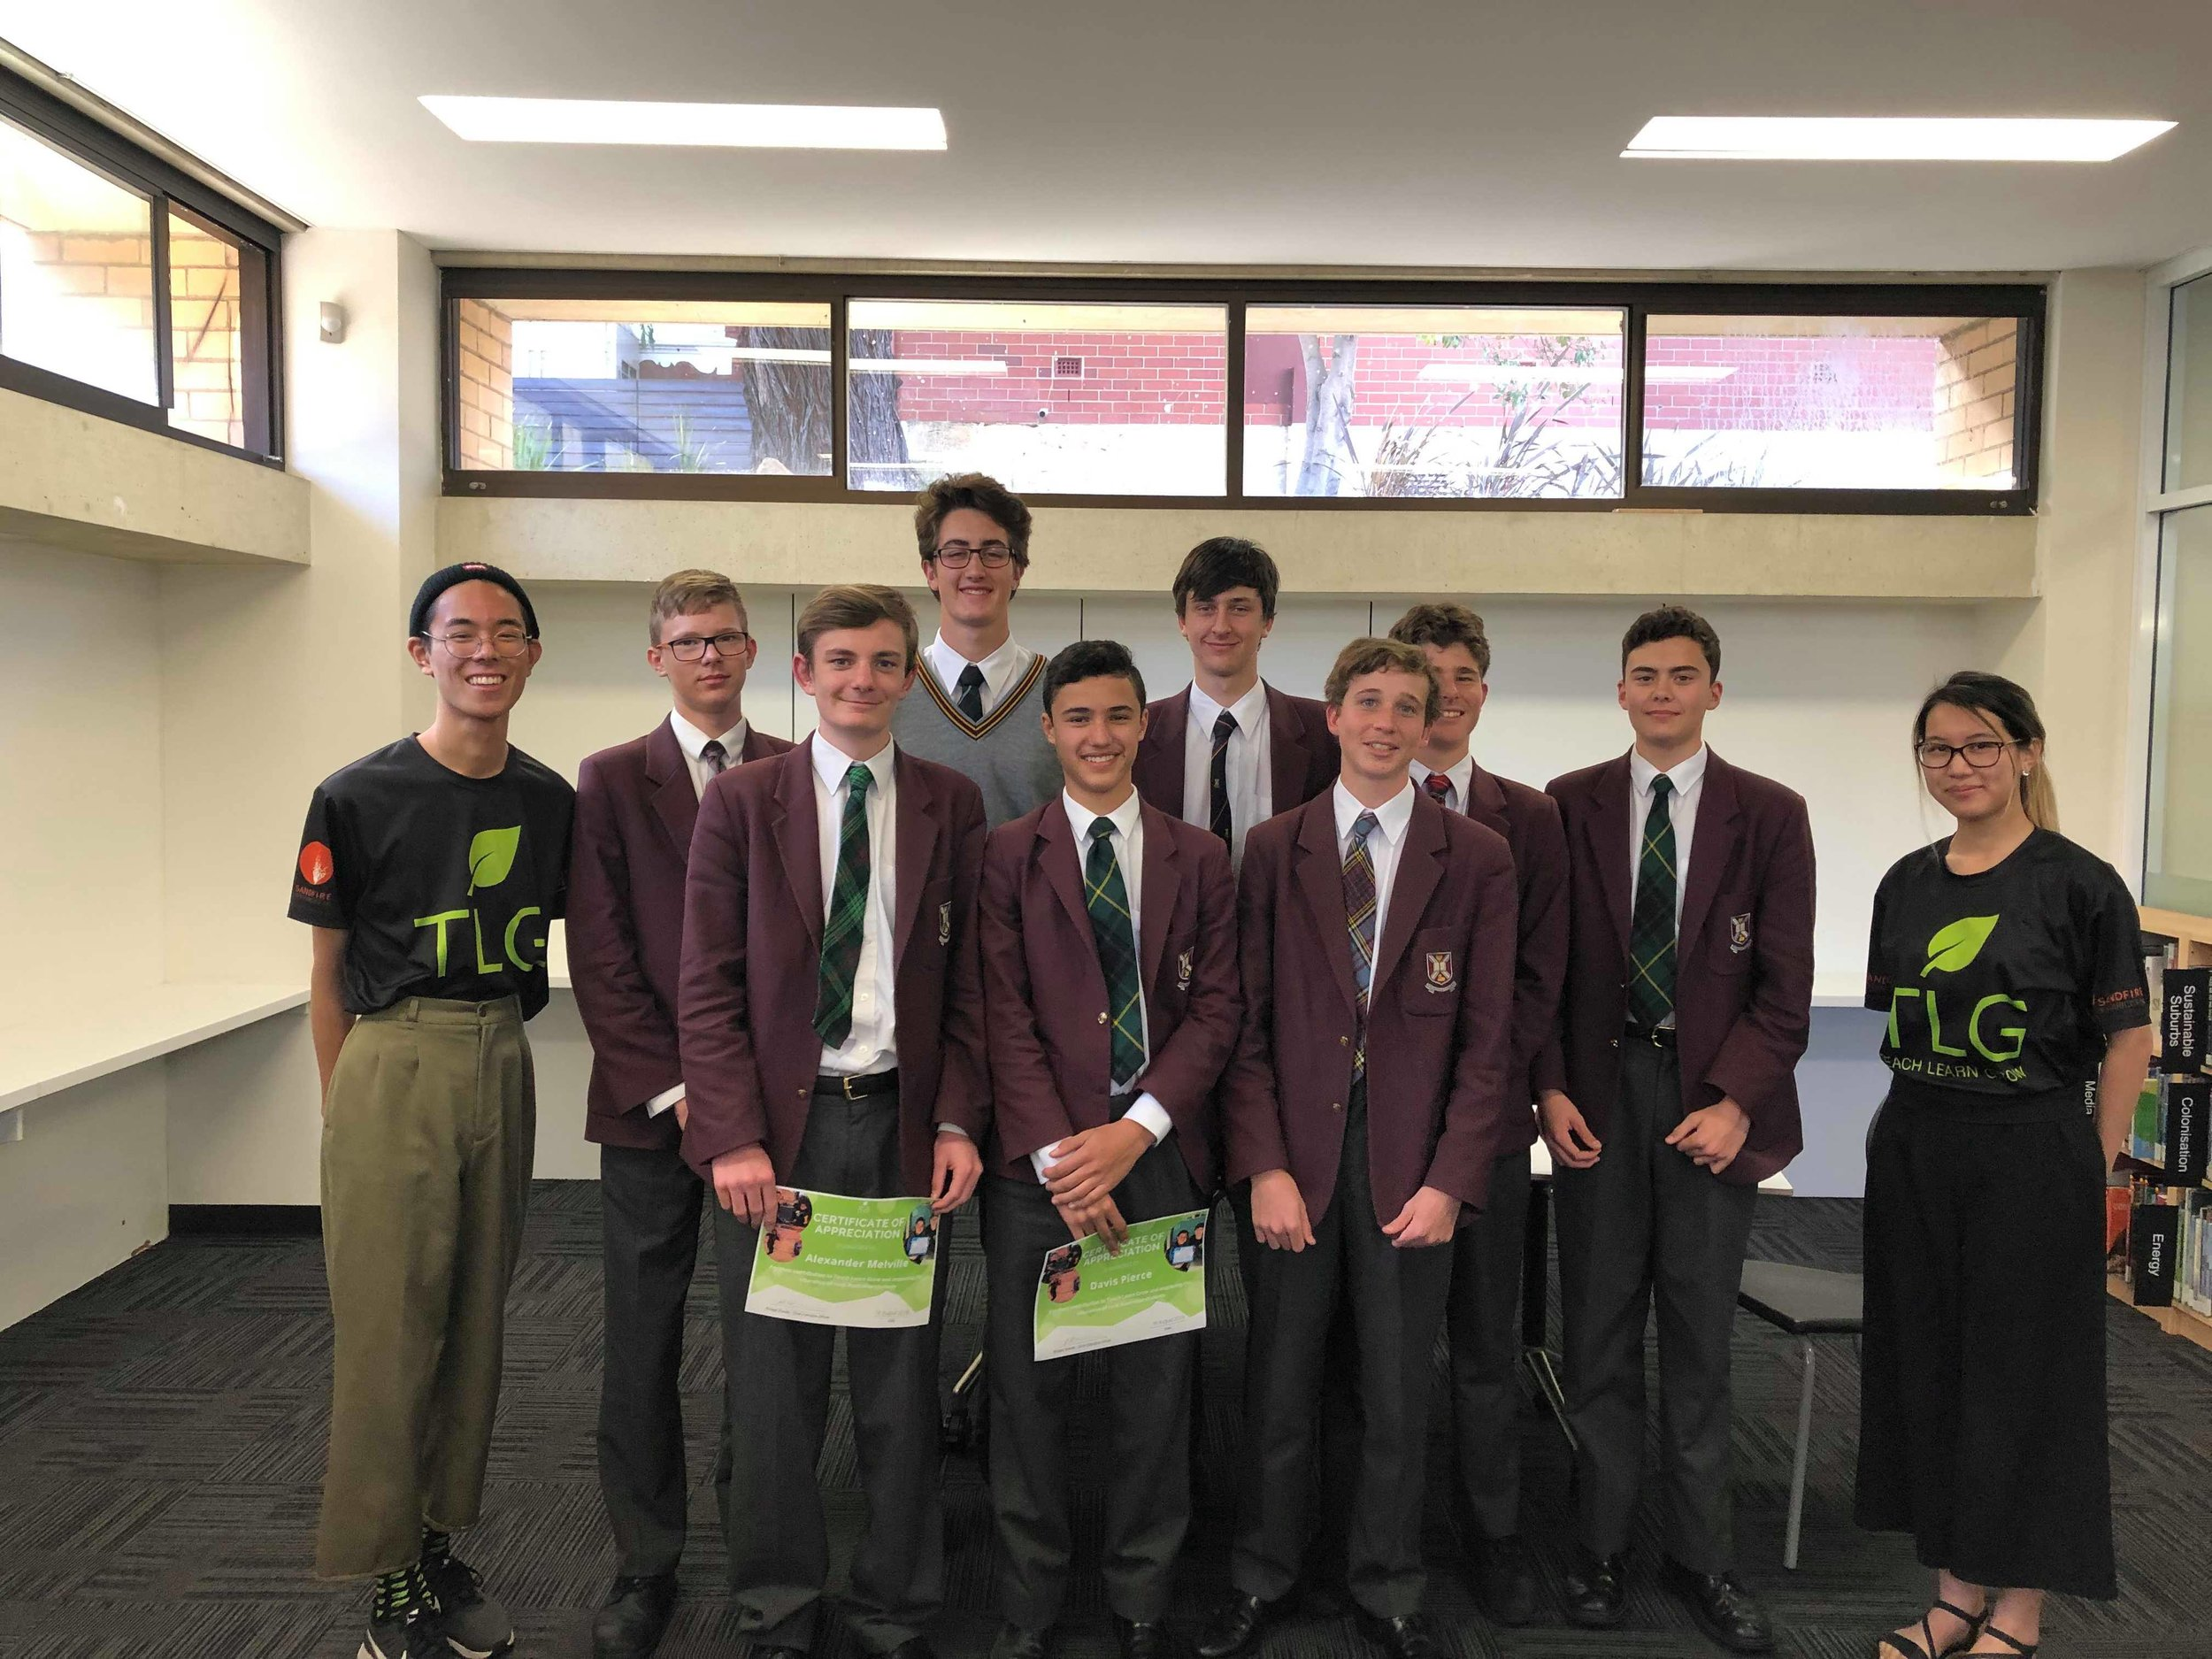 TLG Volunteers Max Tran (Marketing Manager) and Ngoc-Mai Duong (Community Outreach Officer) with year 10 Scotch College students.